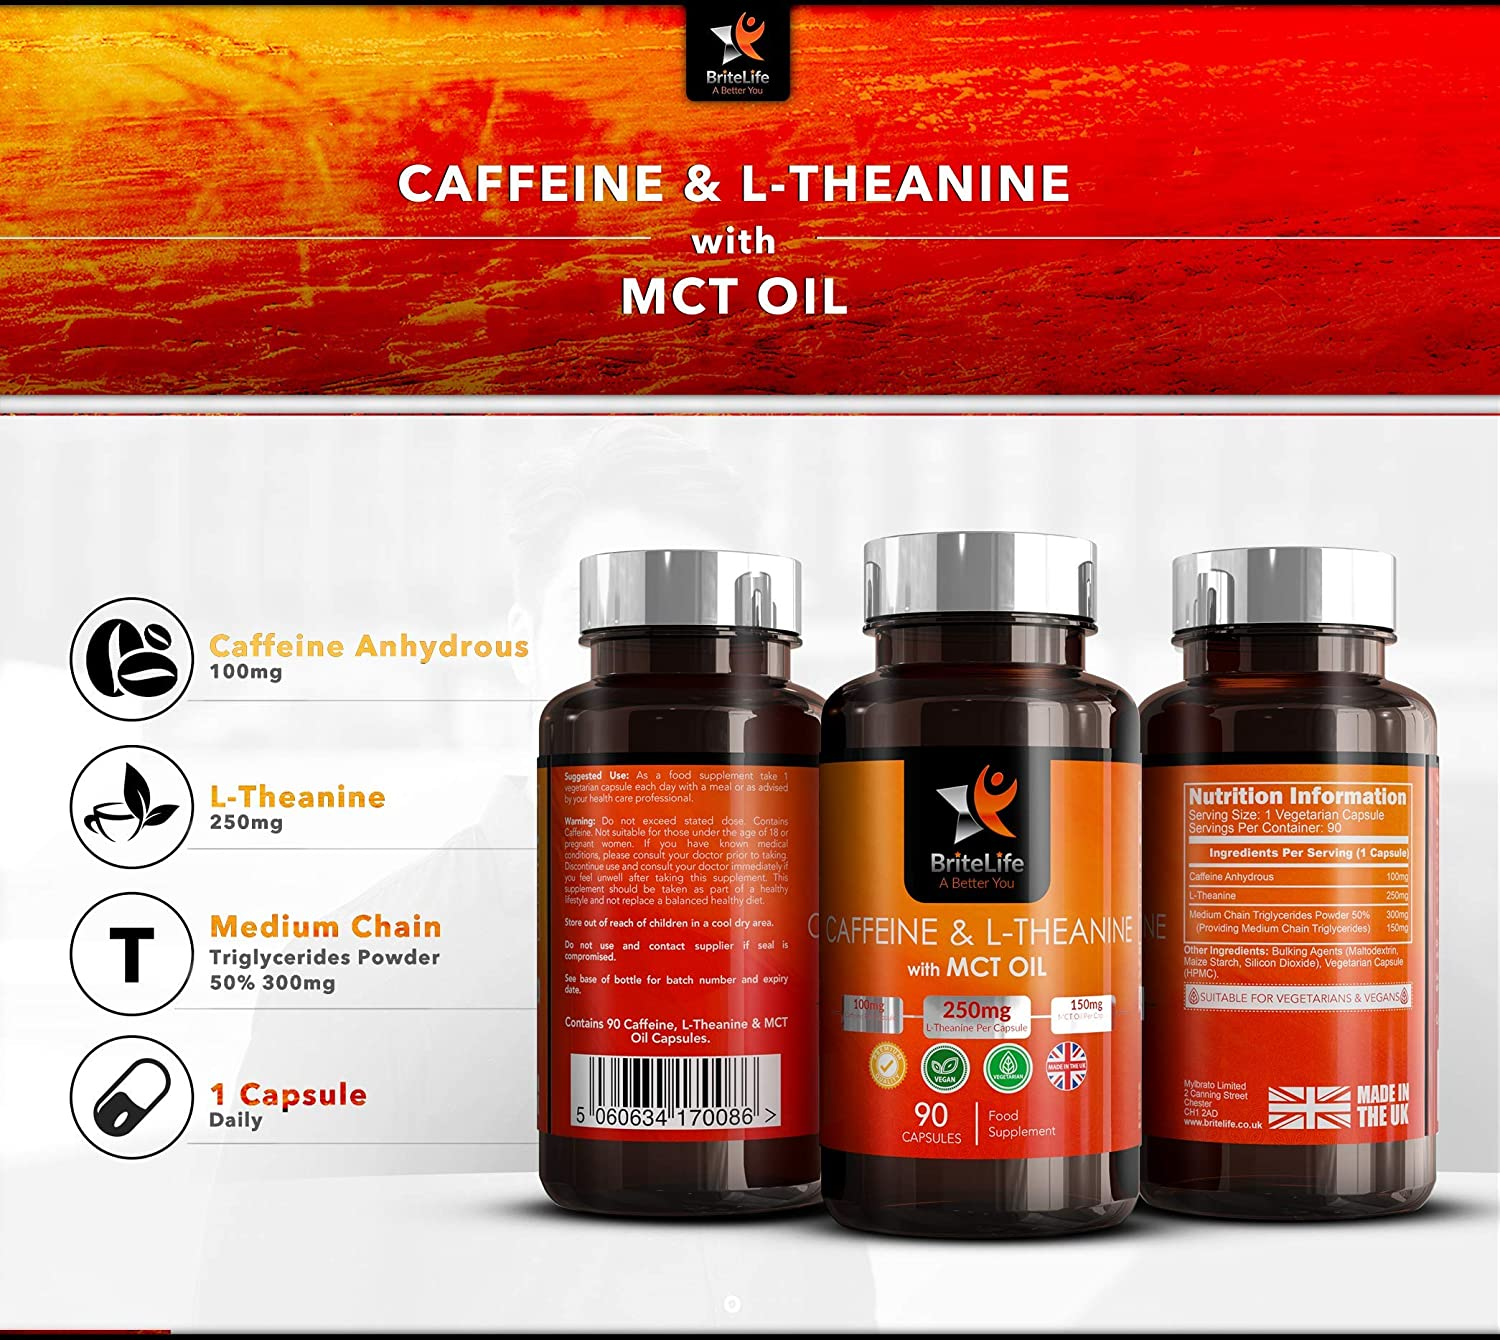 Keto Nootropic Tablets - Caffeine Tablet MCT Oil L Theanine 500mg Advanced Slow Released Energy from Ketogenic Triglycerides - 90 Vegan Caps Non-GMO Gluten Free